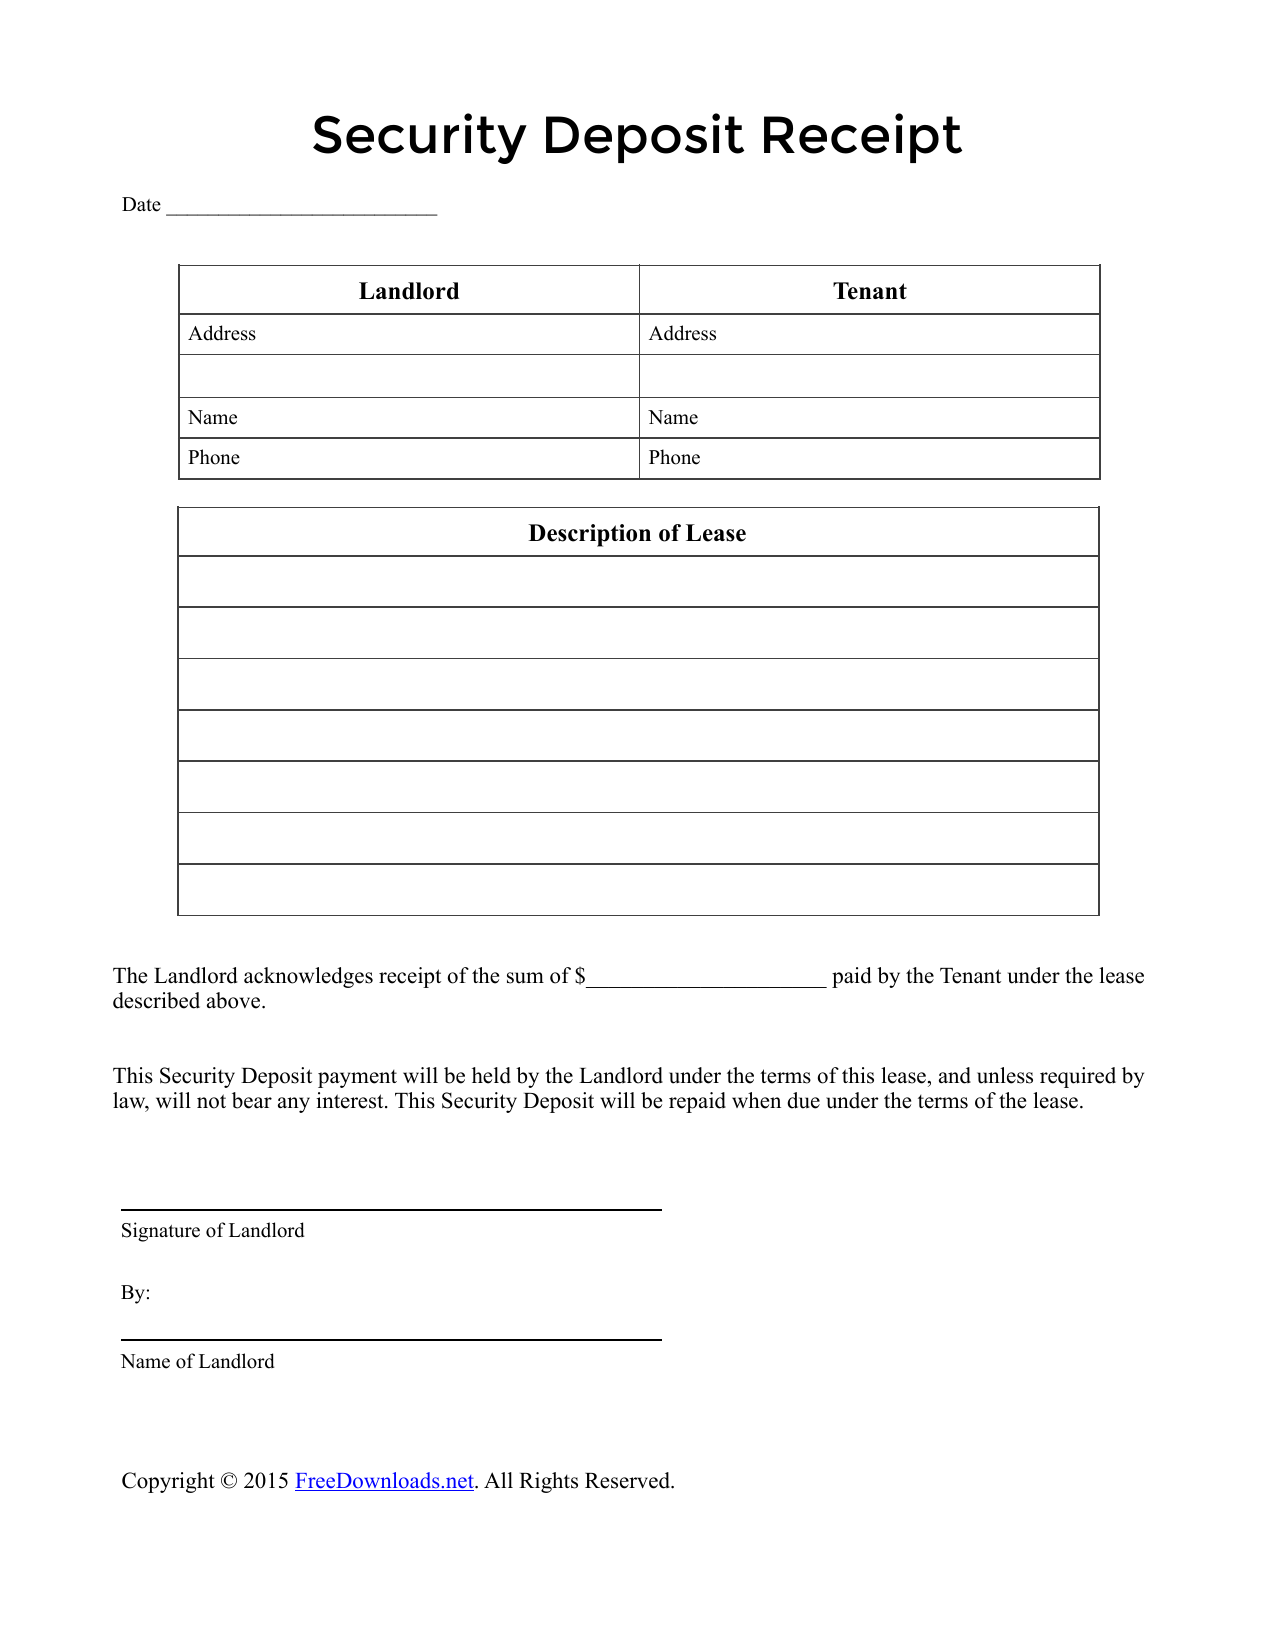 Download Security Deposit Receipt Template | PDF | RTF | Word ...